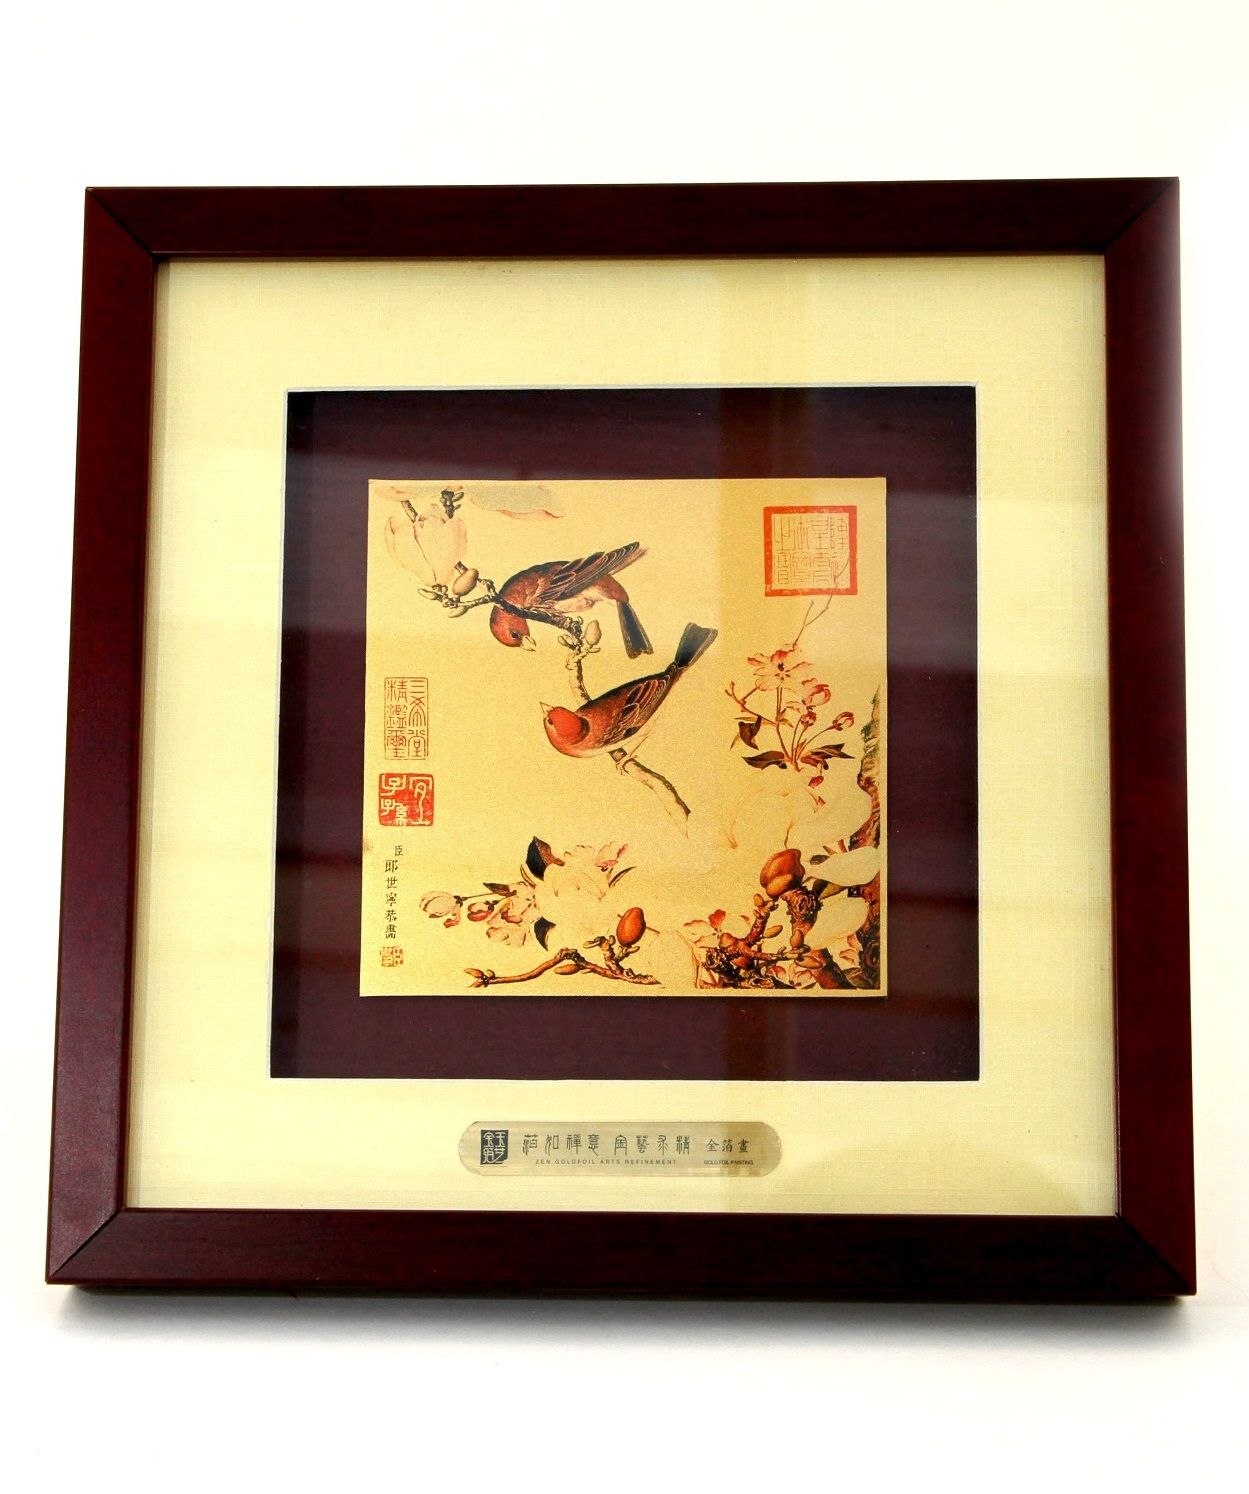 One of the Famous Qing Dynasty Print (Printed on Golden Card)